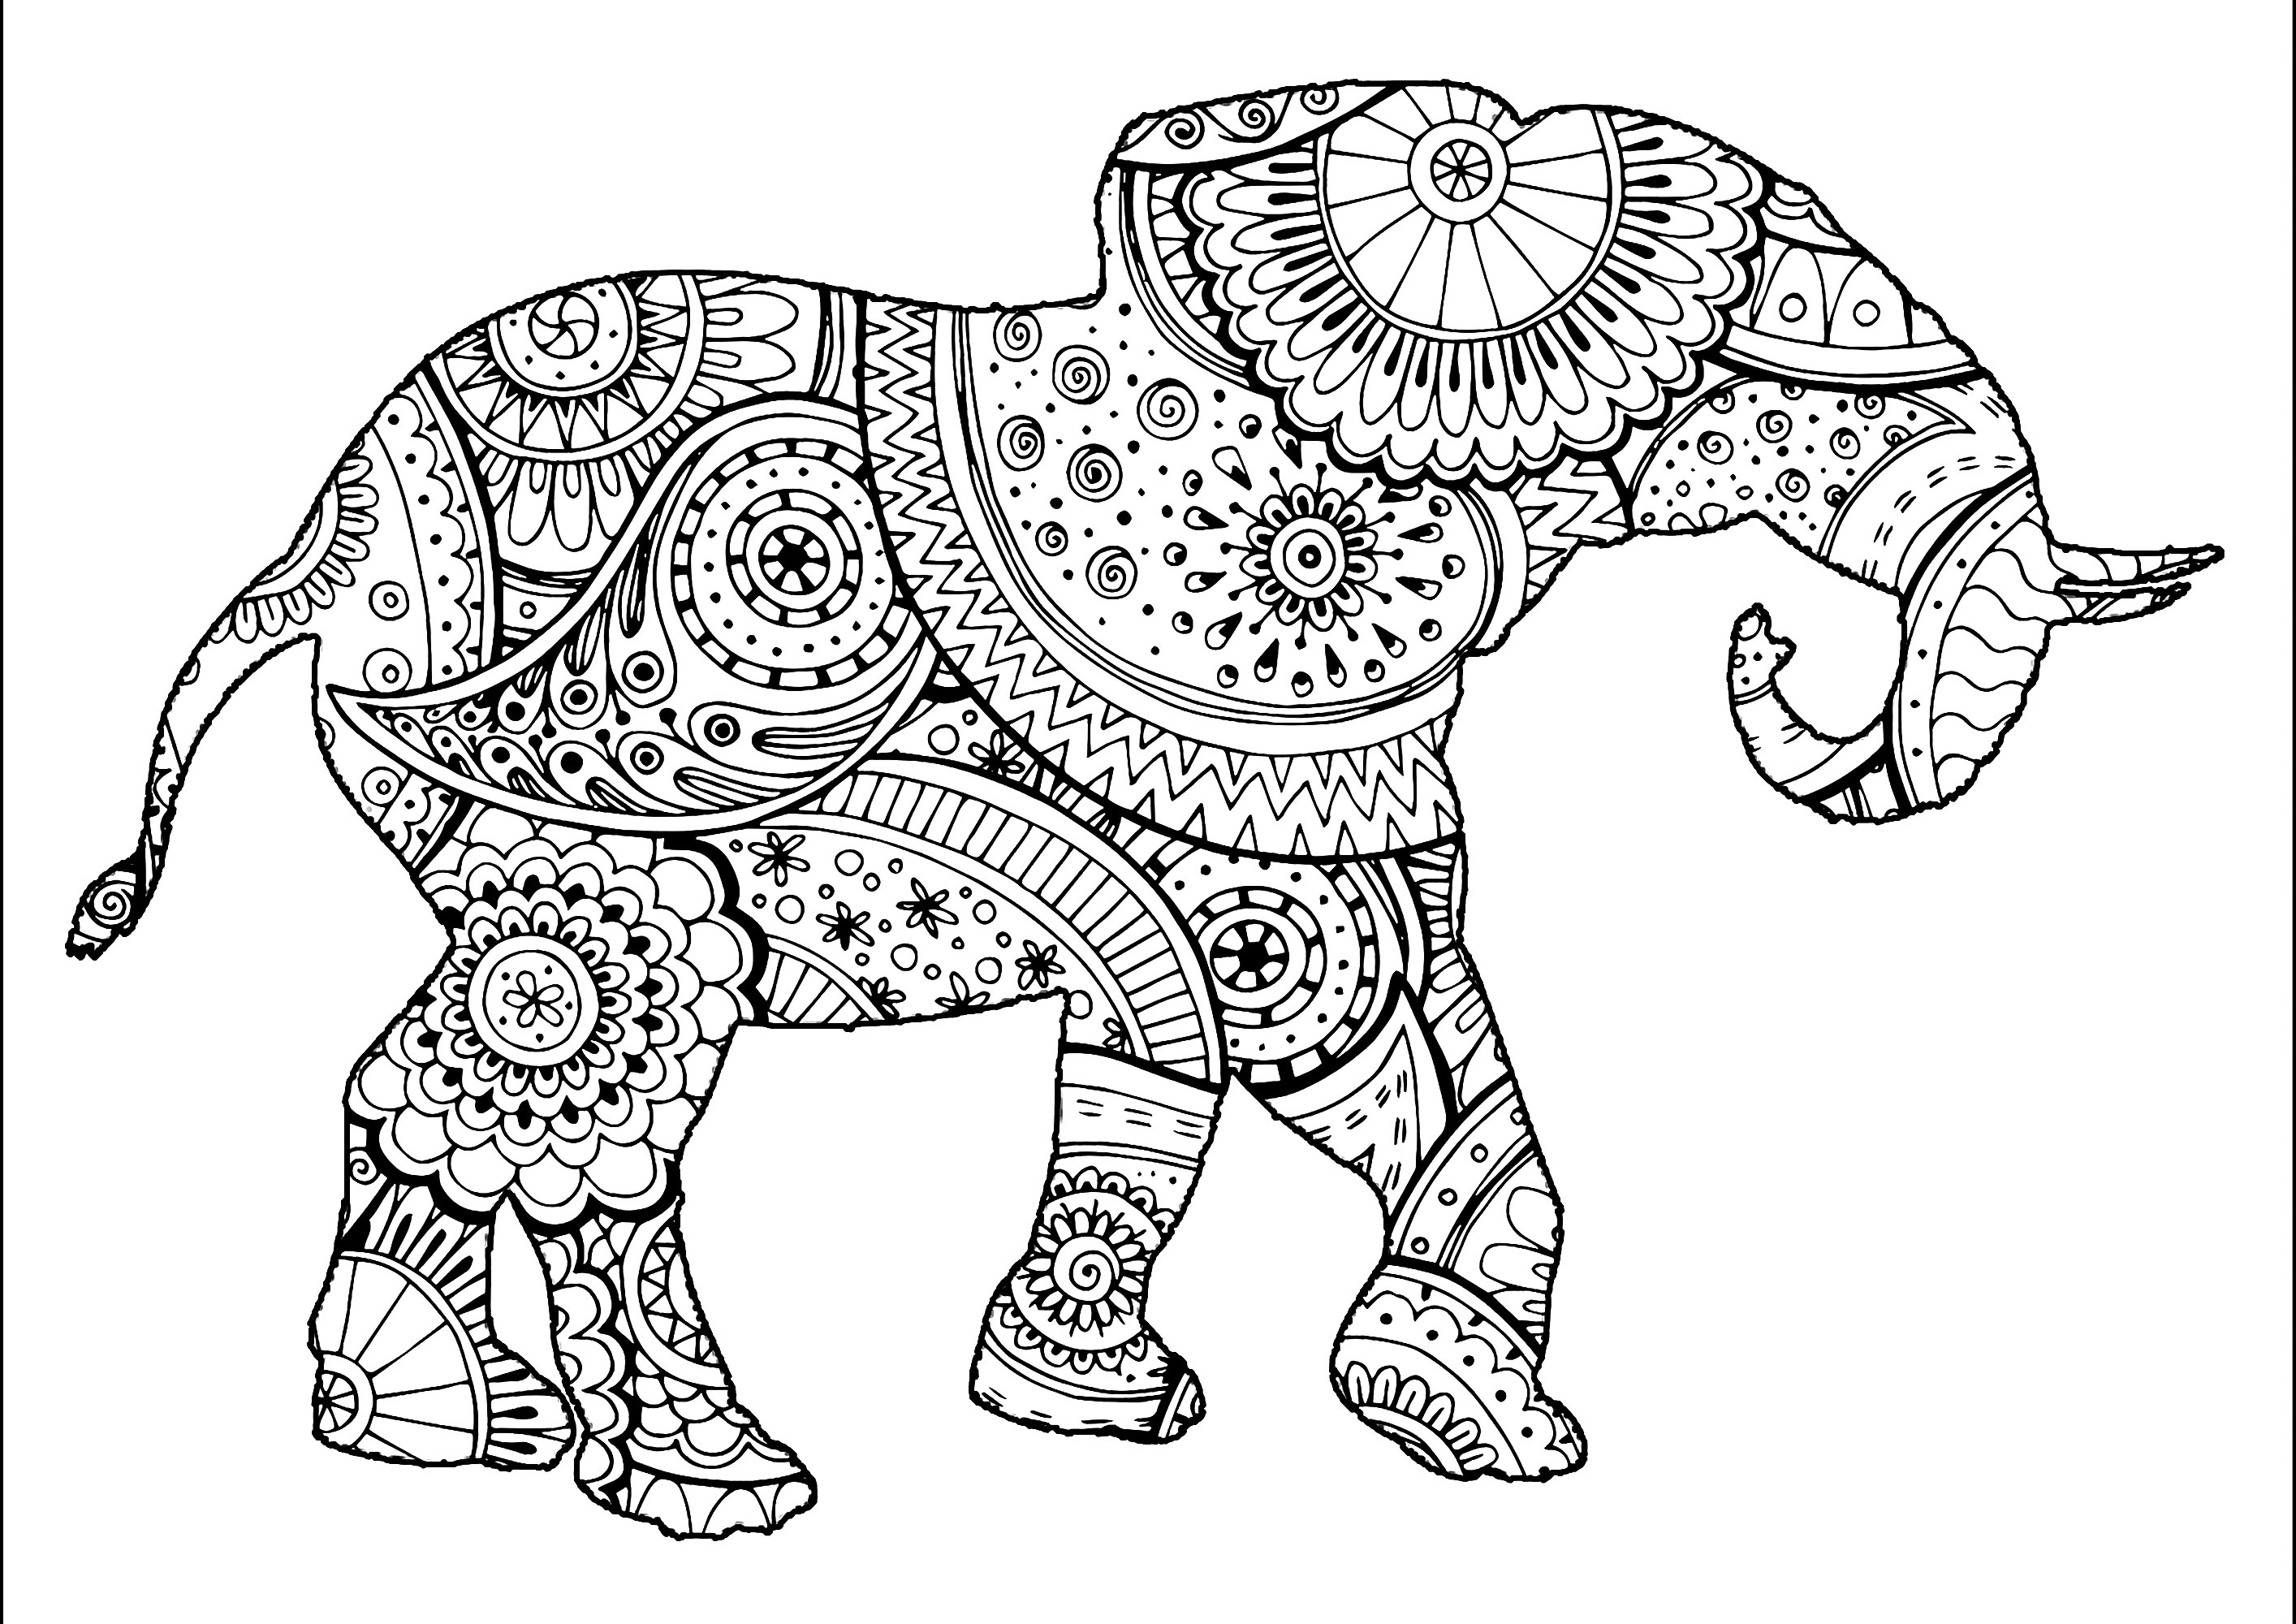 elephant coloring sheets printable elephant shape with patterns elephants adult coloring pages coloring sheets printable elephant